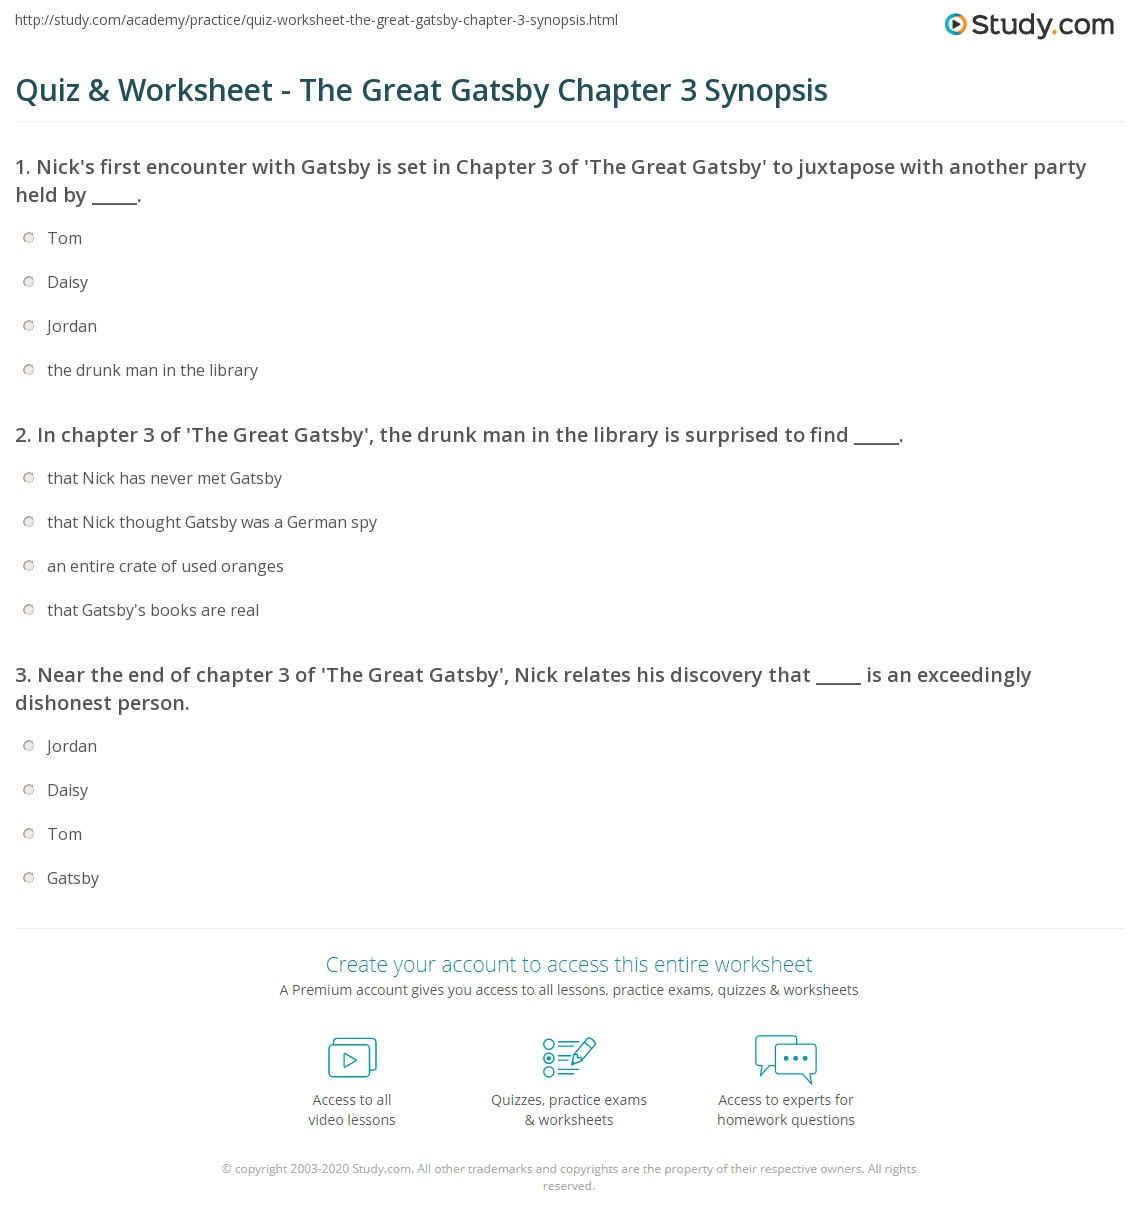 Quiz Worksheet The Great Gatsby Chapter 3 Synopsis